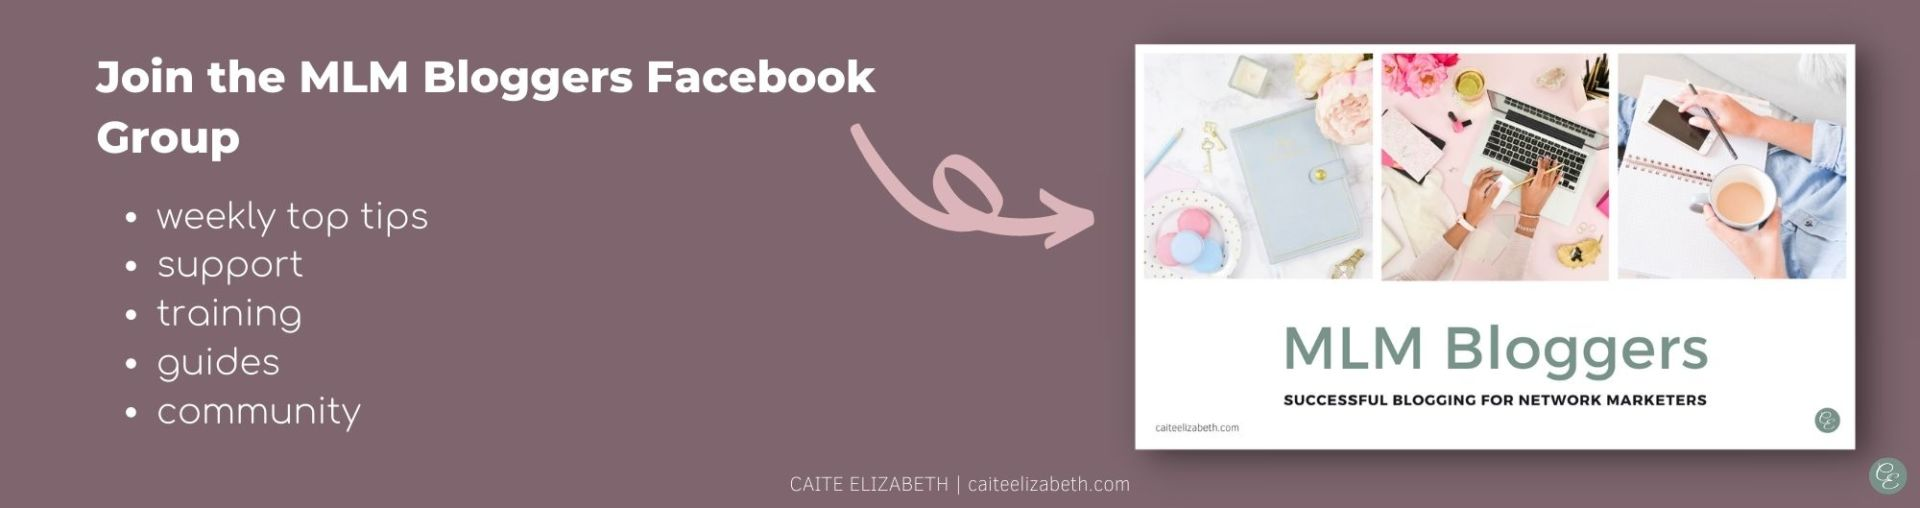 MLM bloggers facebook group